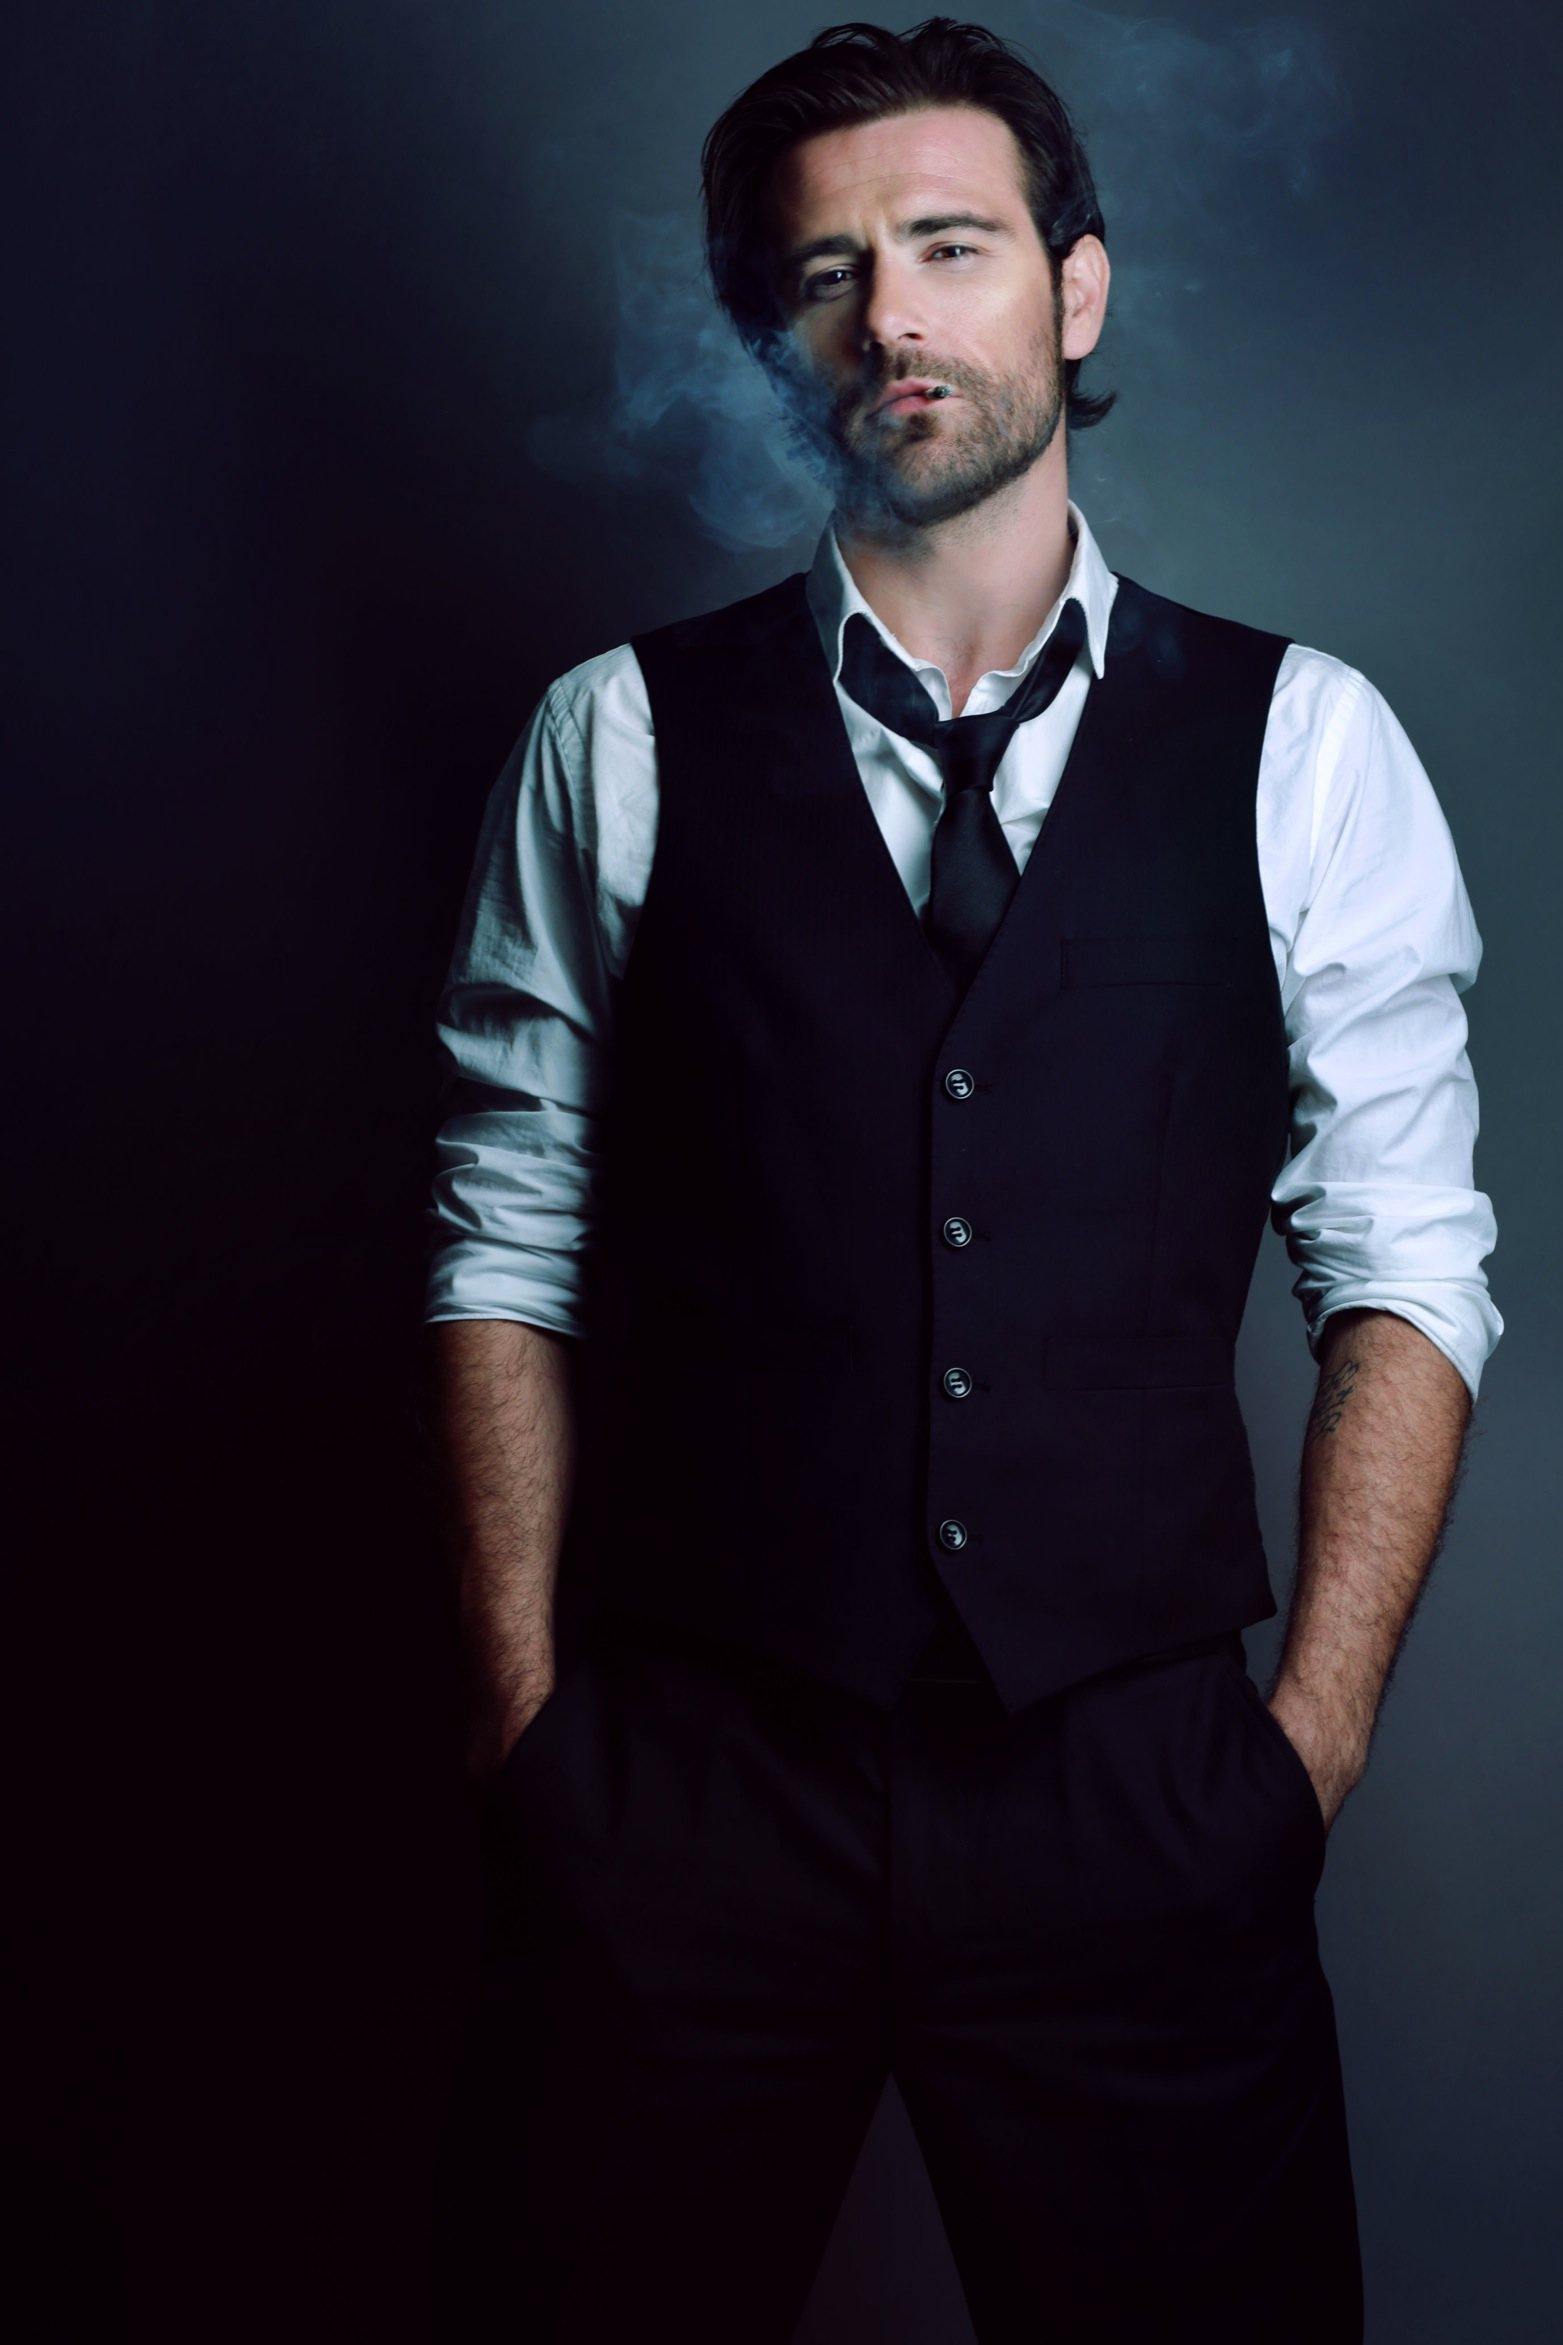 http://images6.fanpop.com/image/photos/37700000/Matt-Ryan-constantine-nbc-37772979-1563-2345.jpg